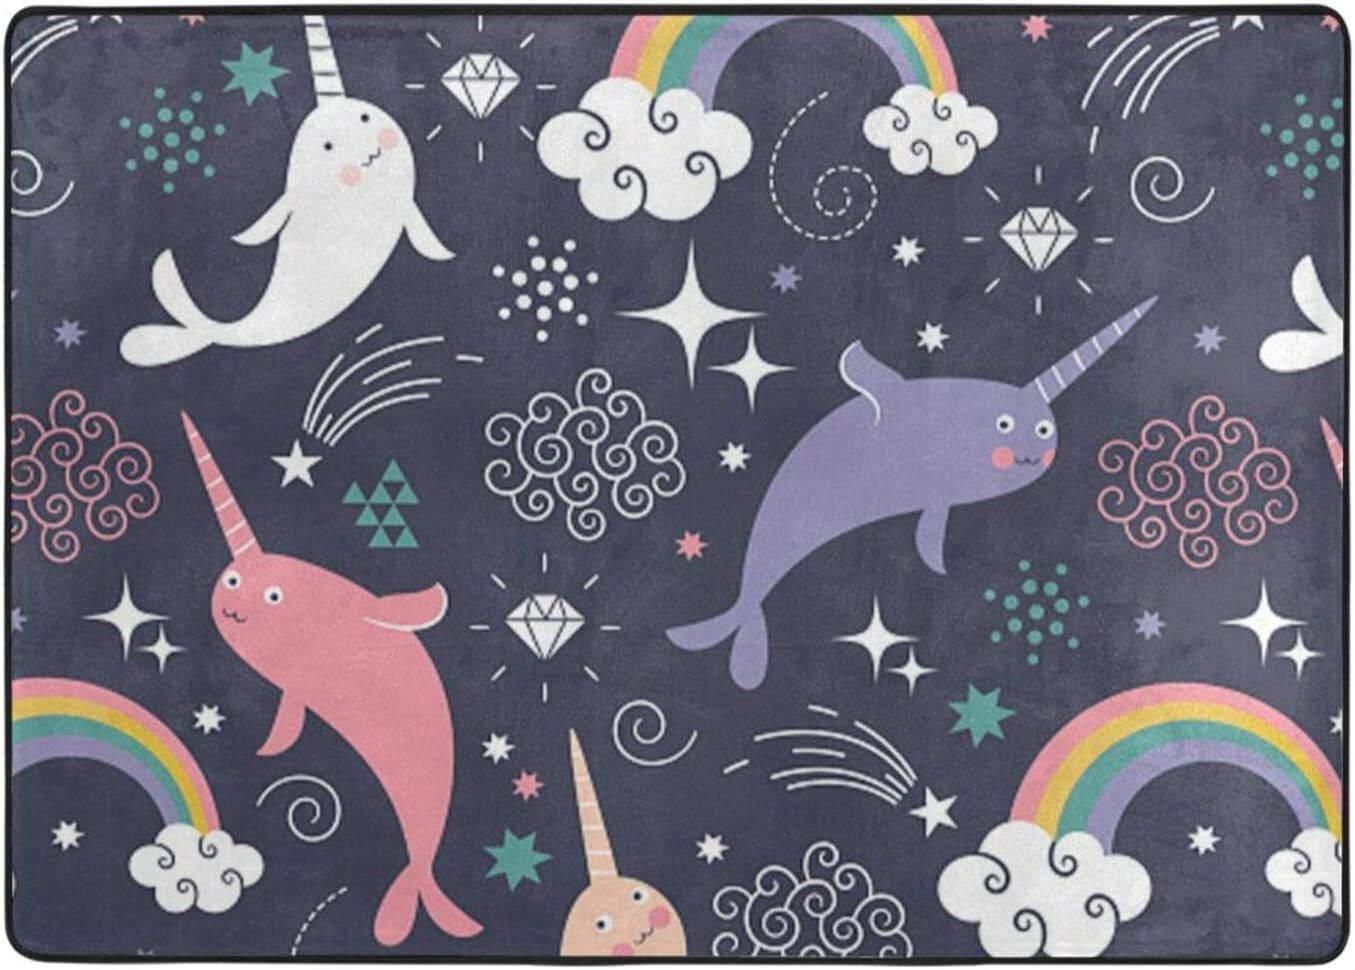 Cute New arrival Sea Animal Rainbow Printed Area Free shipping on posting reviews Room Bedroo Living Rugs for